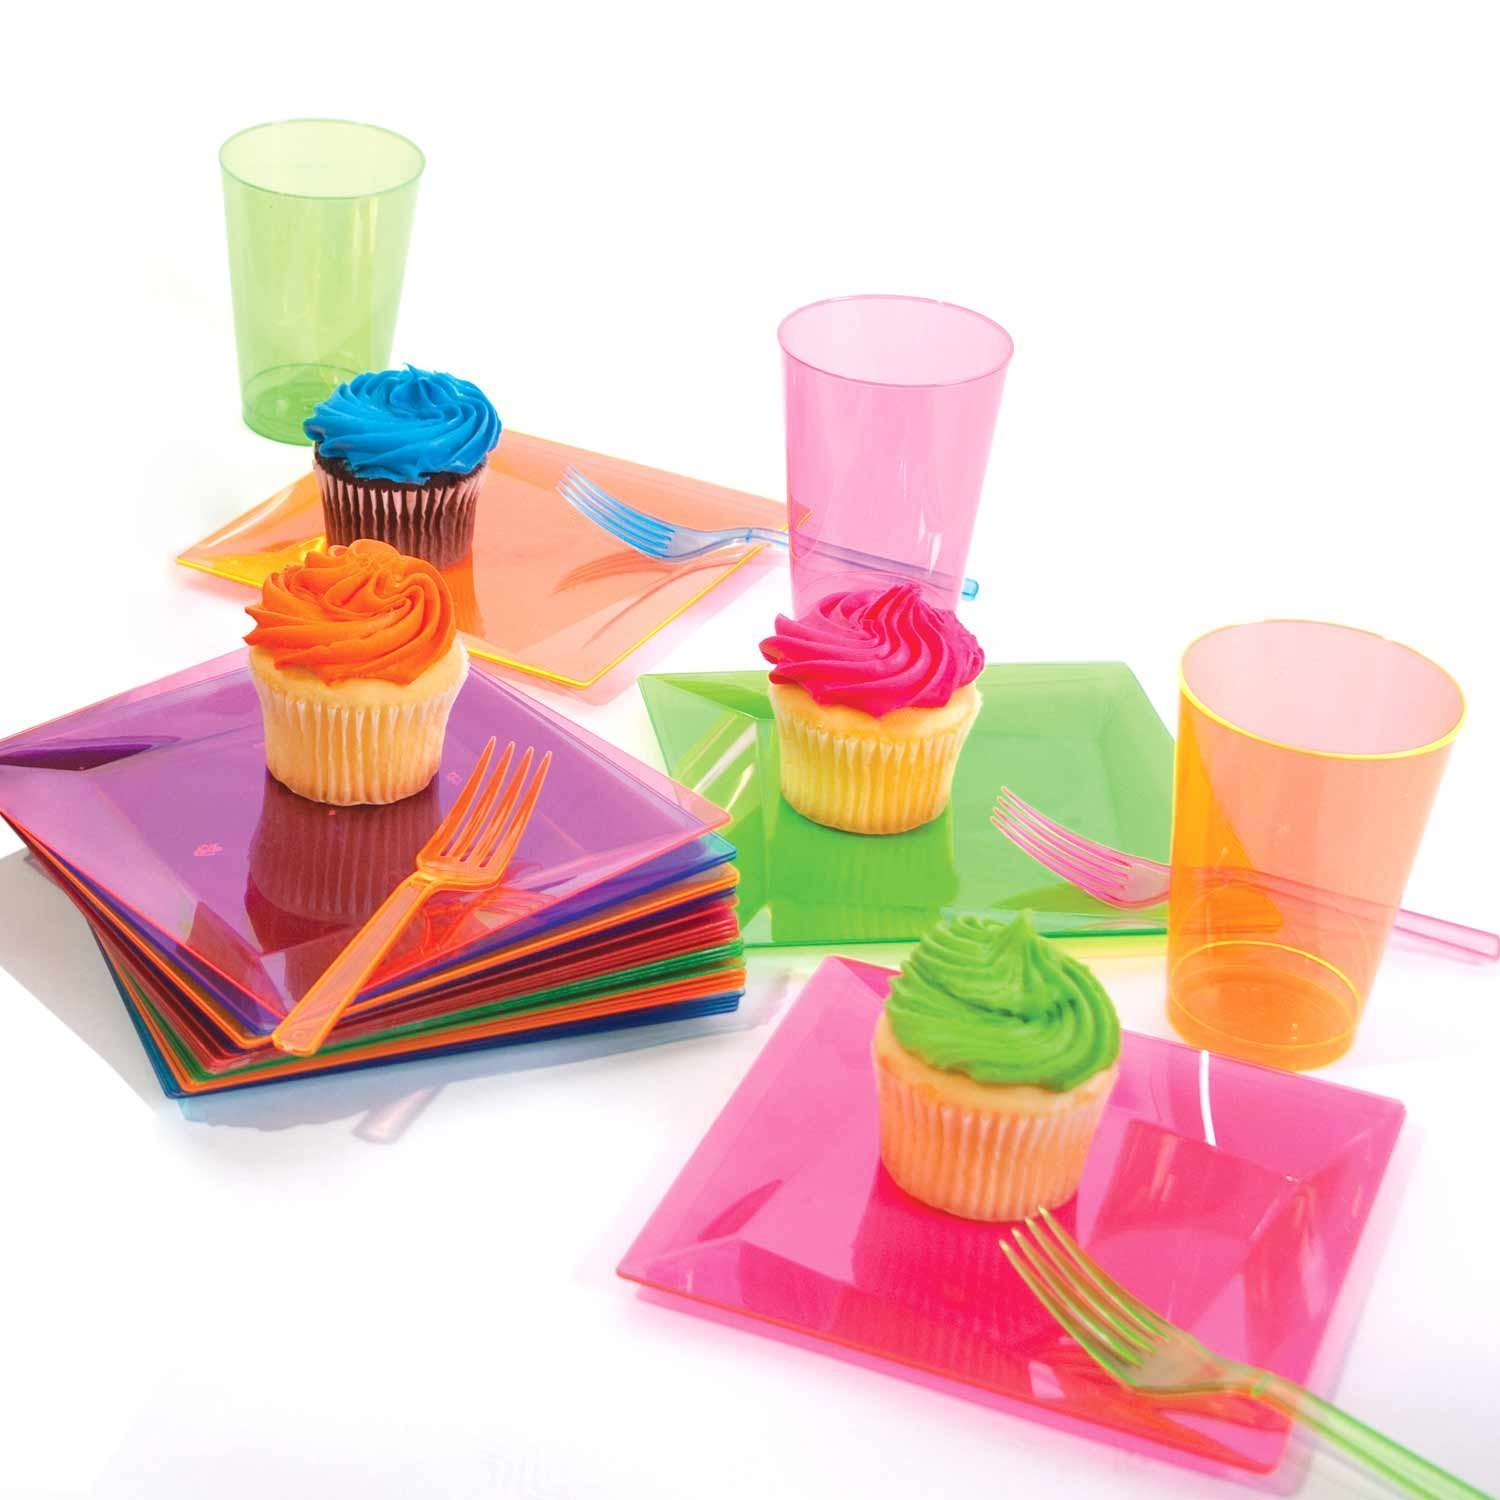 Party Essentials Hard Plastic 9-Ounce Party Cups/Old Fashioned Tumblers, 200-Count, Assorted Neon by Party Essentials (Image #6)